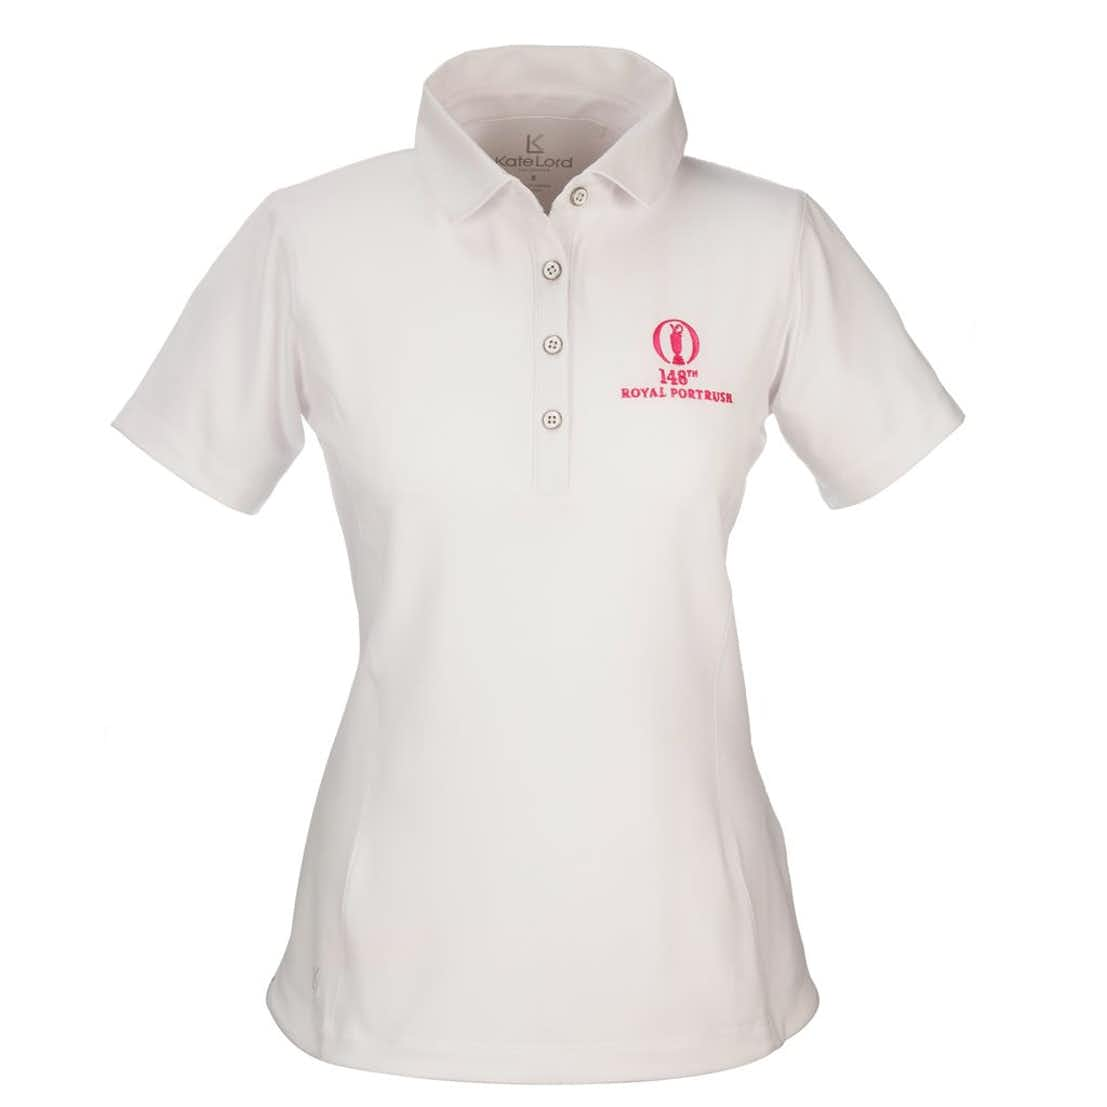 148th Royal Portrush Kate Lord Plain Polo - White